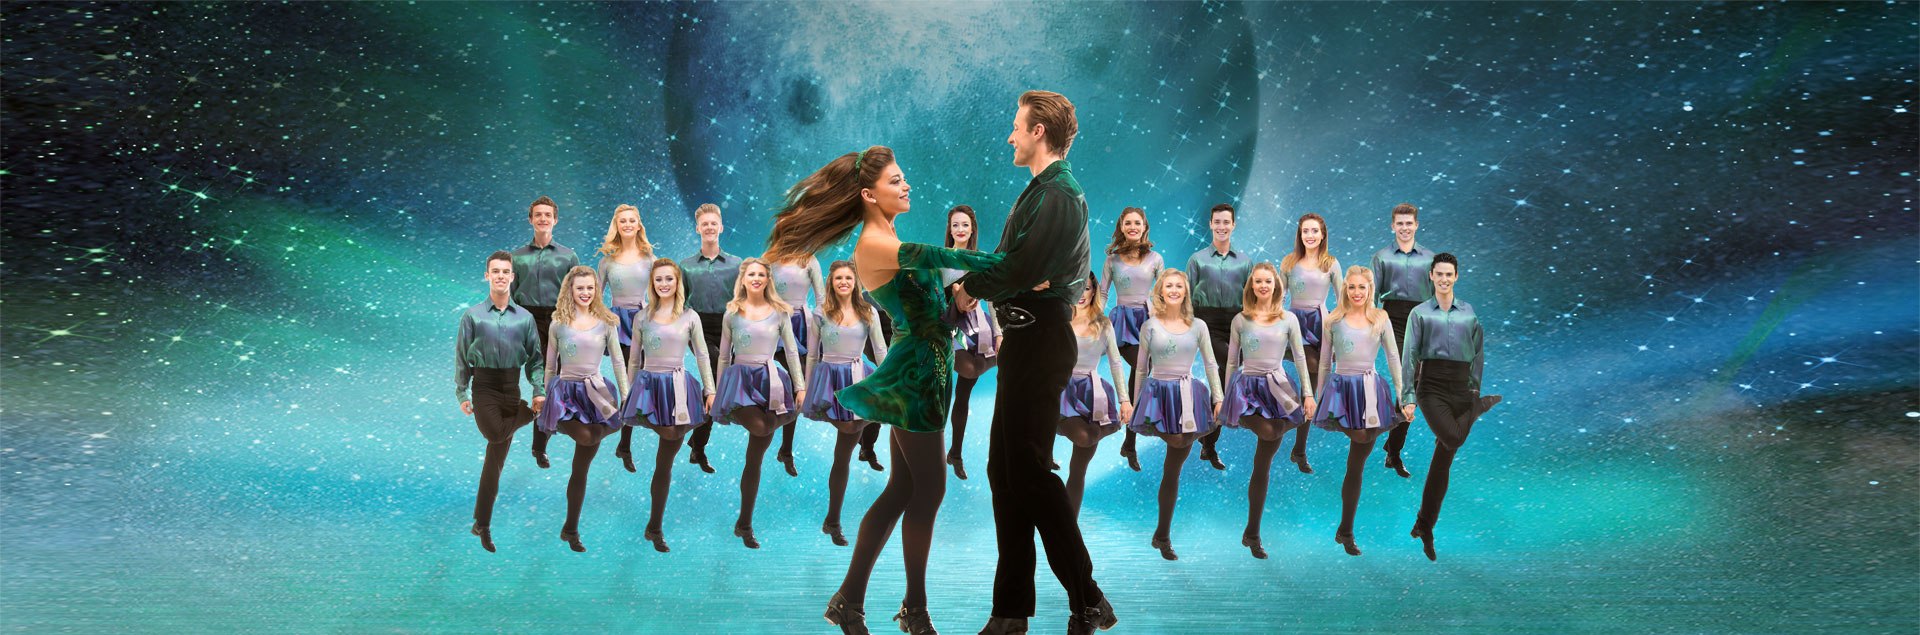 AURORA'S PARAMOUNT THEATRE HOSTS RIVERDANCE 20TH  ANNIVERSARY TOUR MARCH 31-APRIL 2